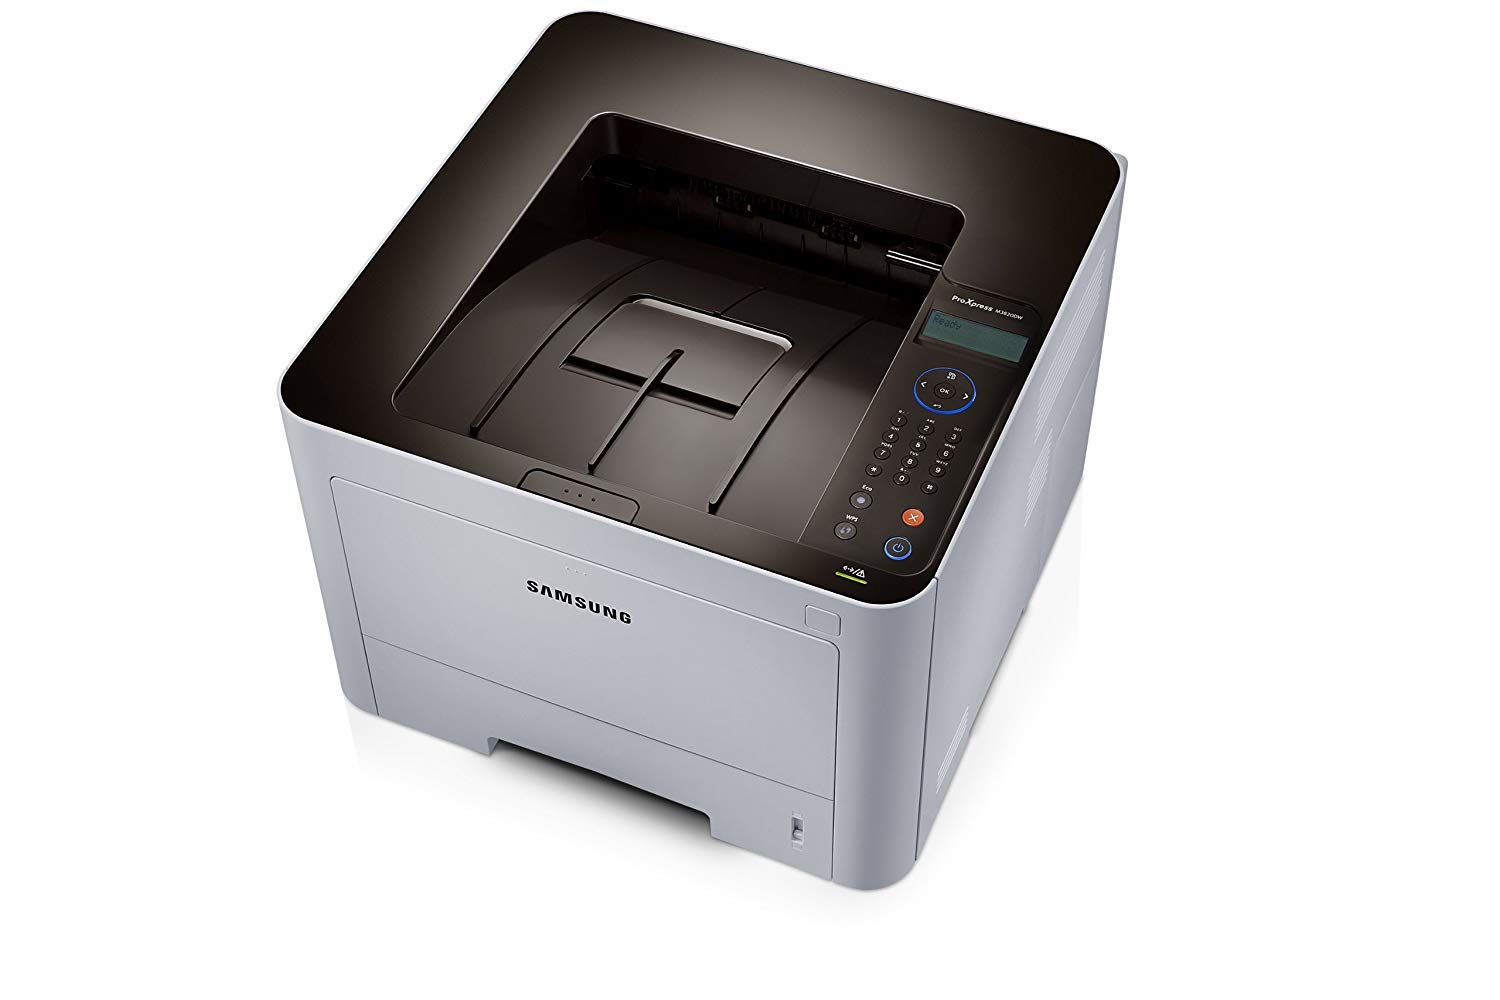 Samsung ProXpress M3820DW Wireless Monochrome Laser Printer with Mobile Connectivity, Duplex Printing, Print Security & Management Tools, Amazon Dash Replenishment Enabled (SS372C) by HP (Image #11)